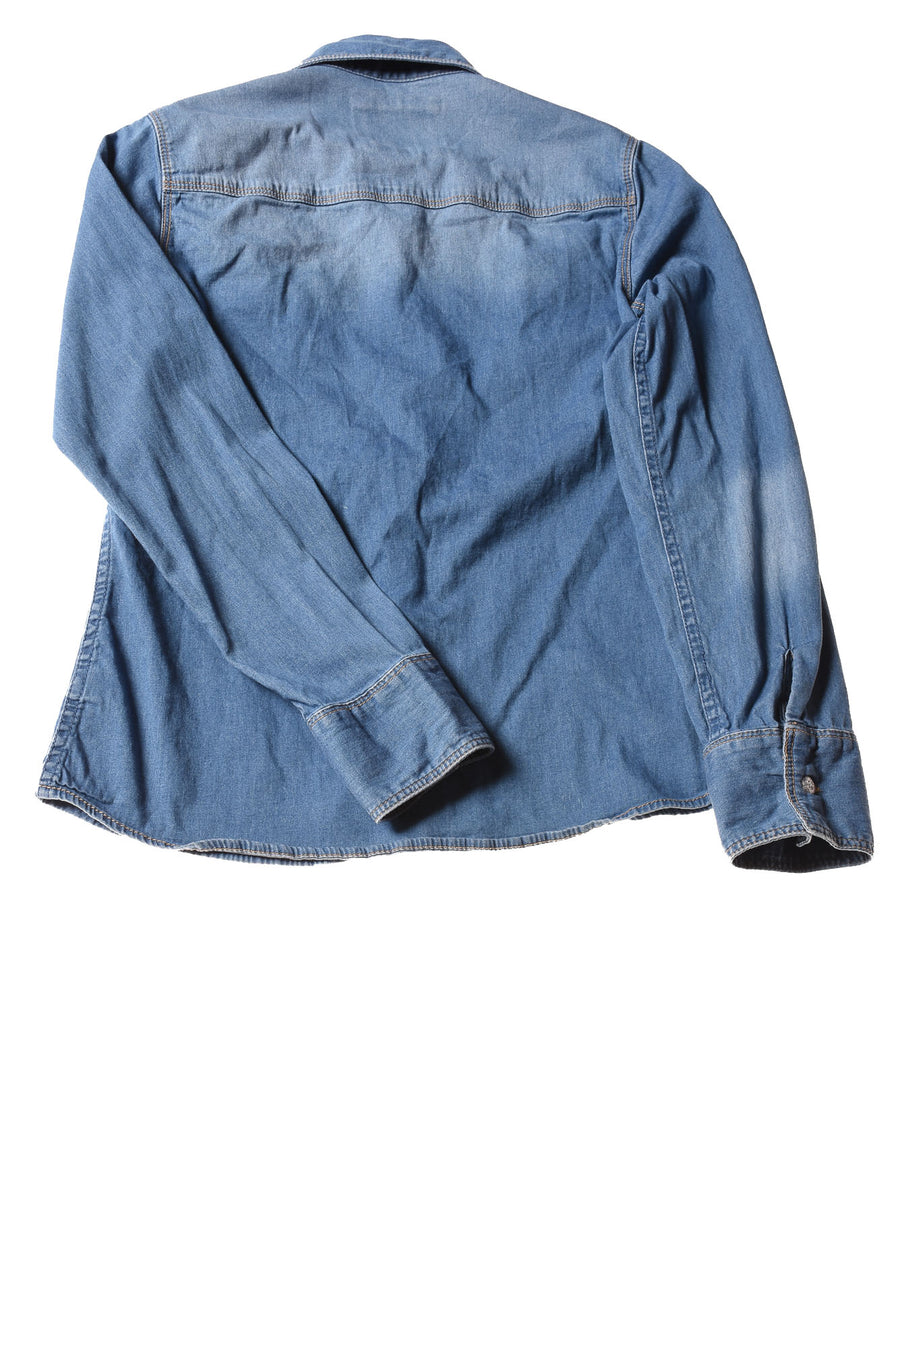 USED Justice Girl's Top 14 Blue